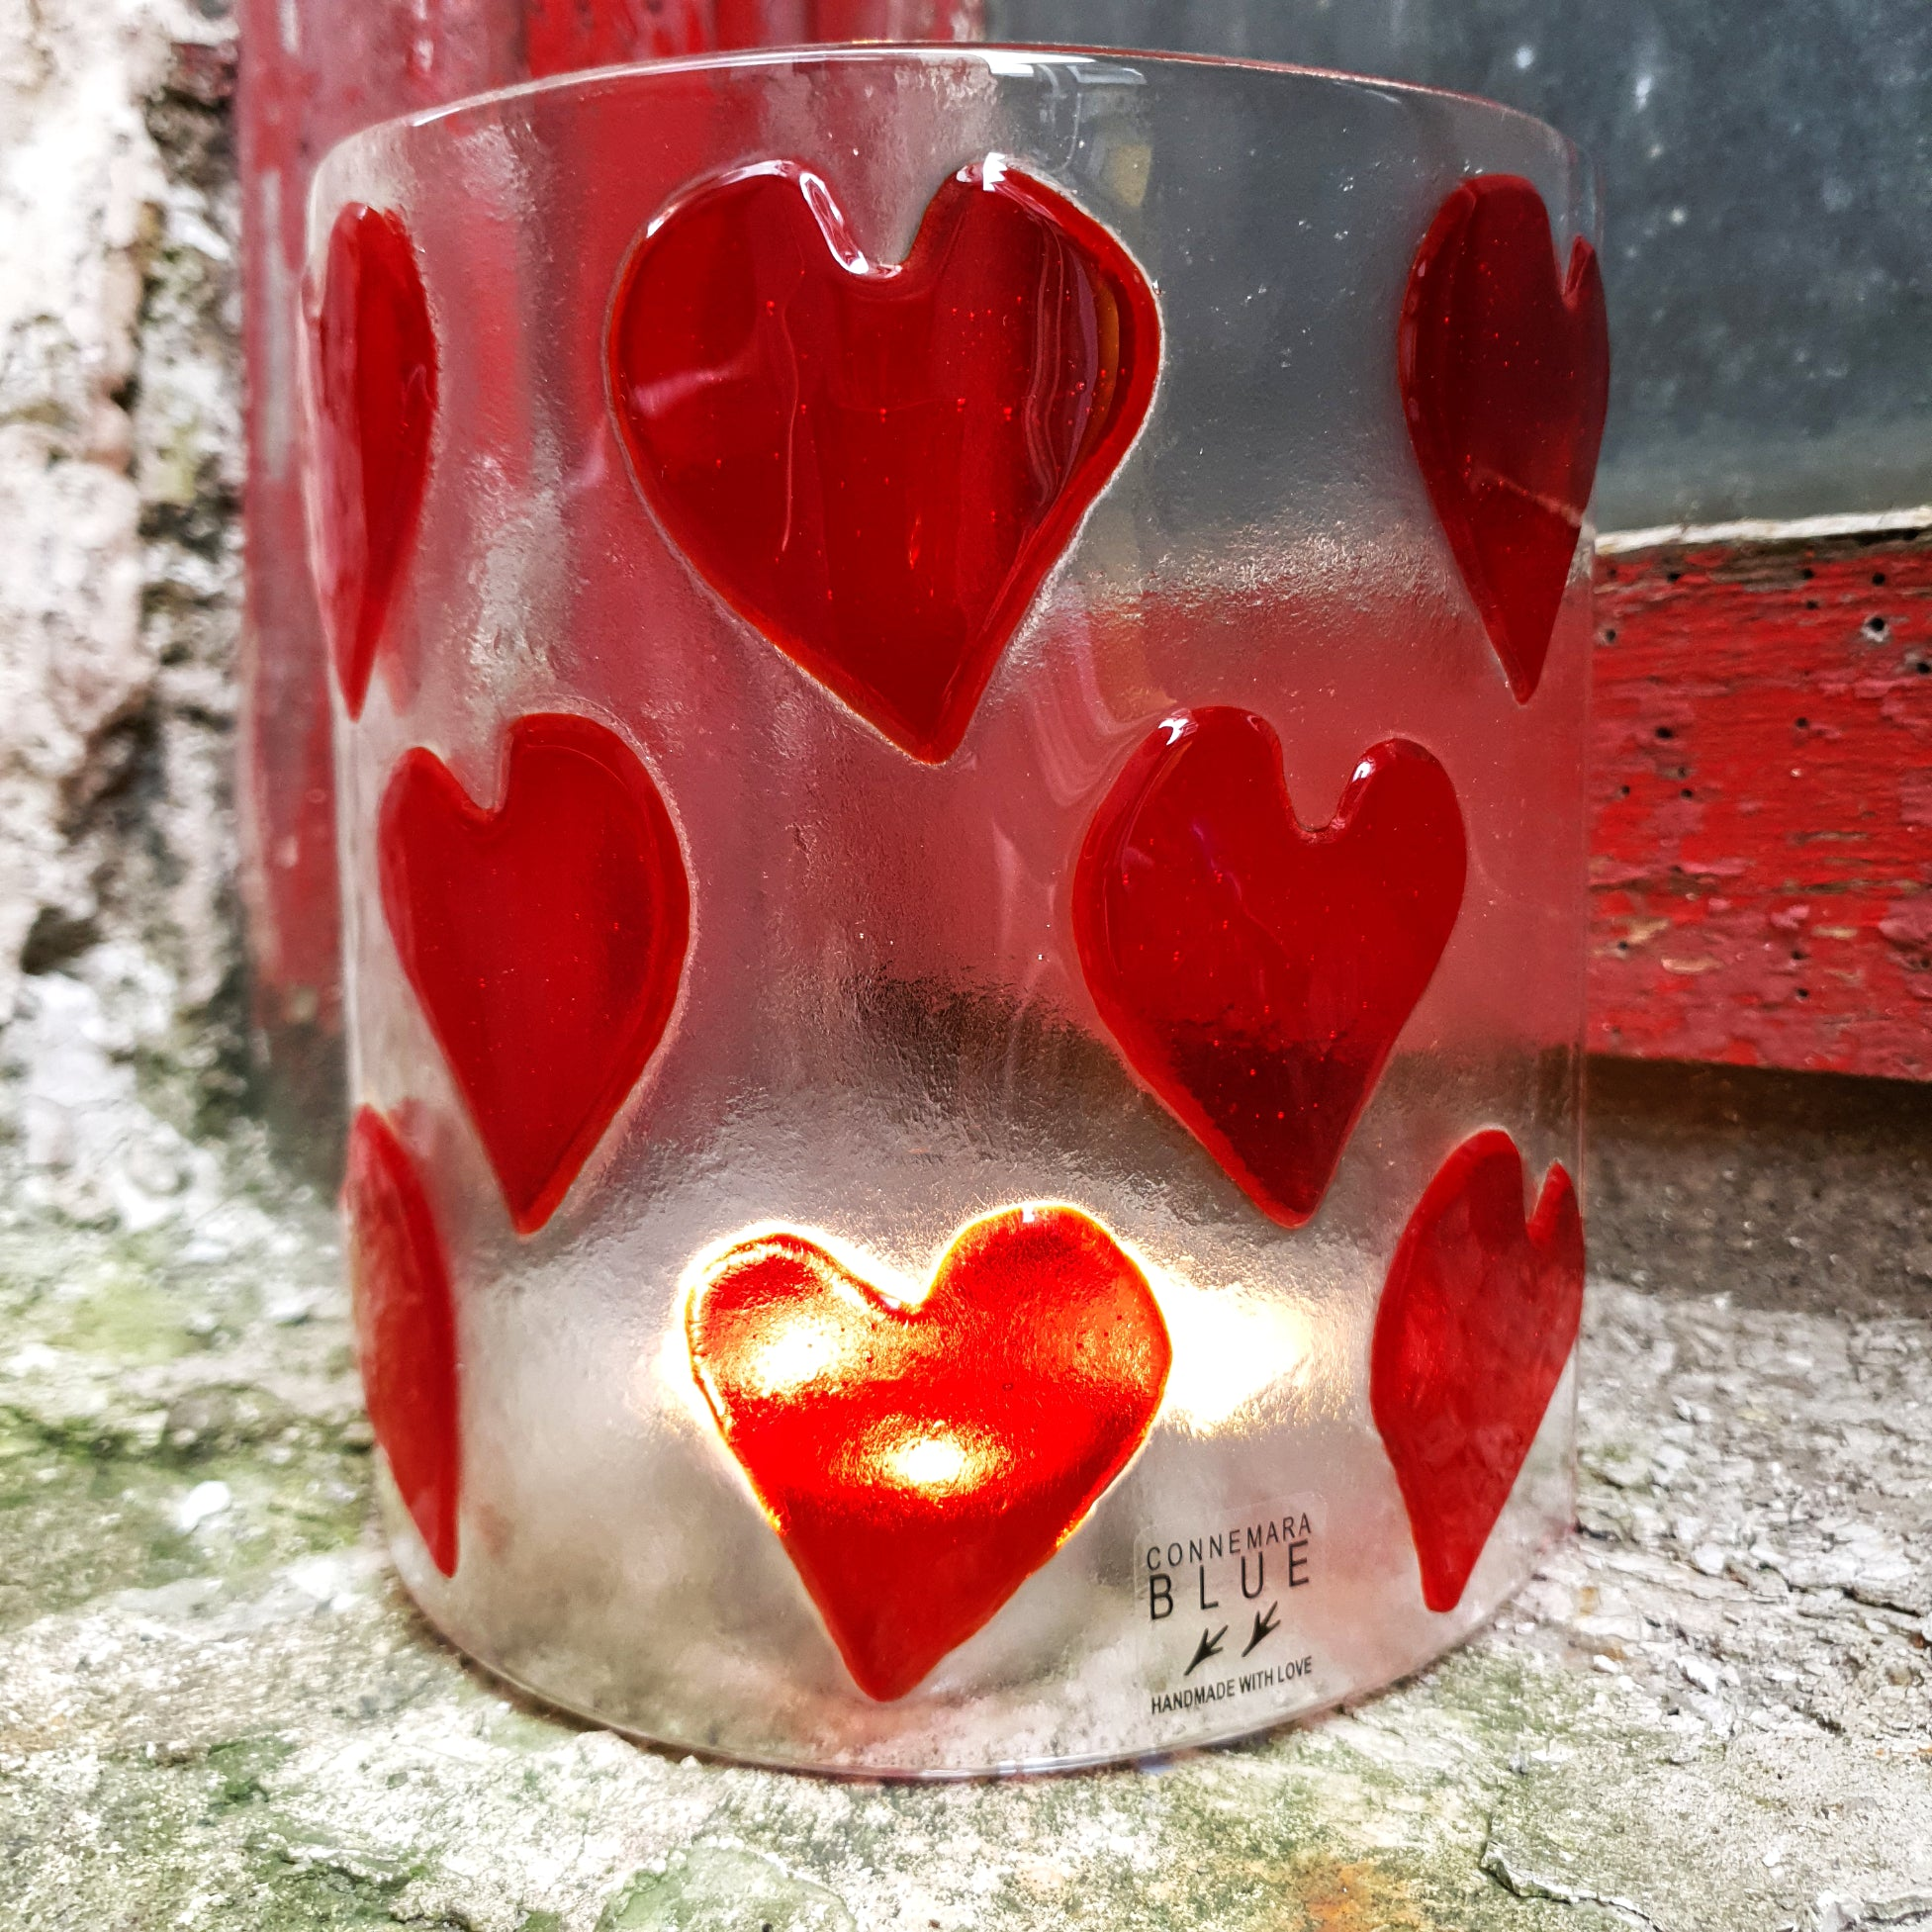 A clear glass candle shield with eight large red hearts, handmade by Connemara Blue